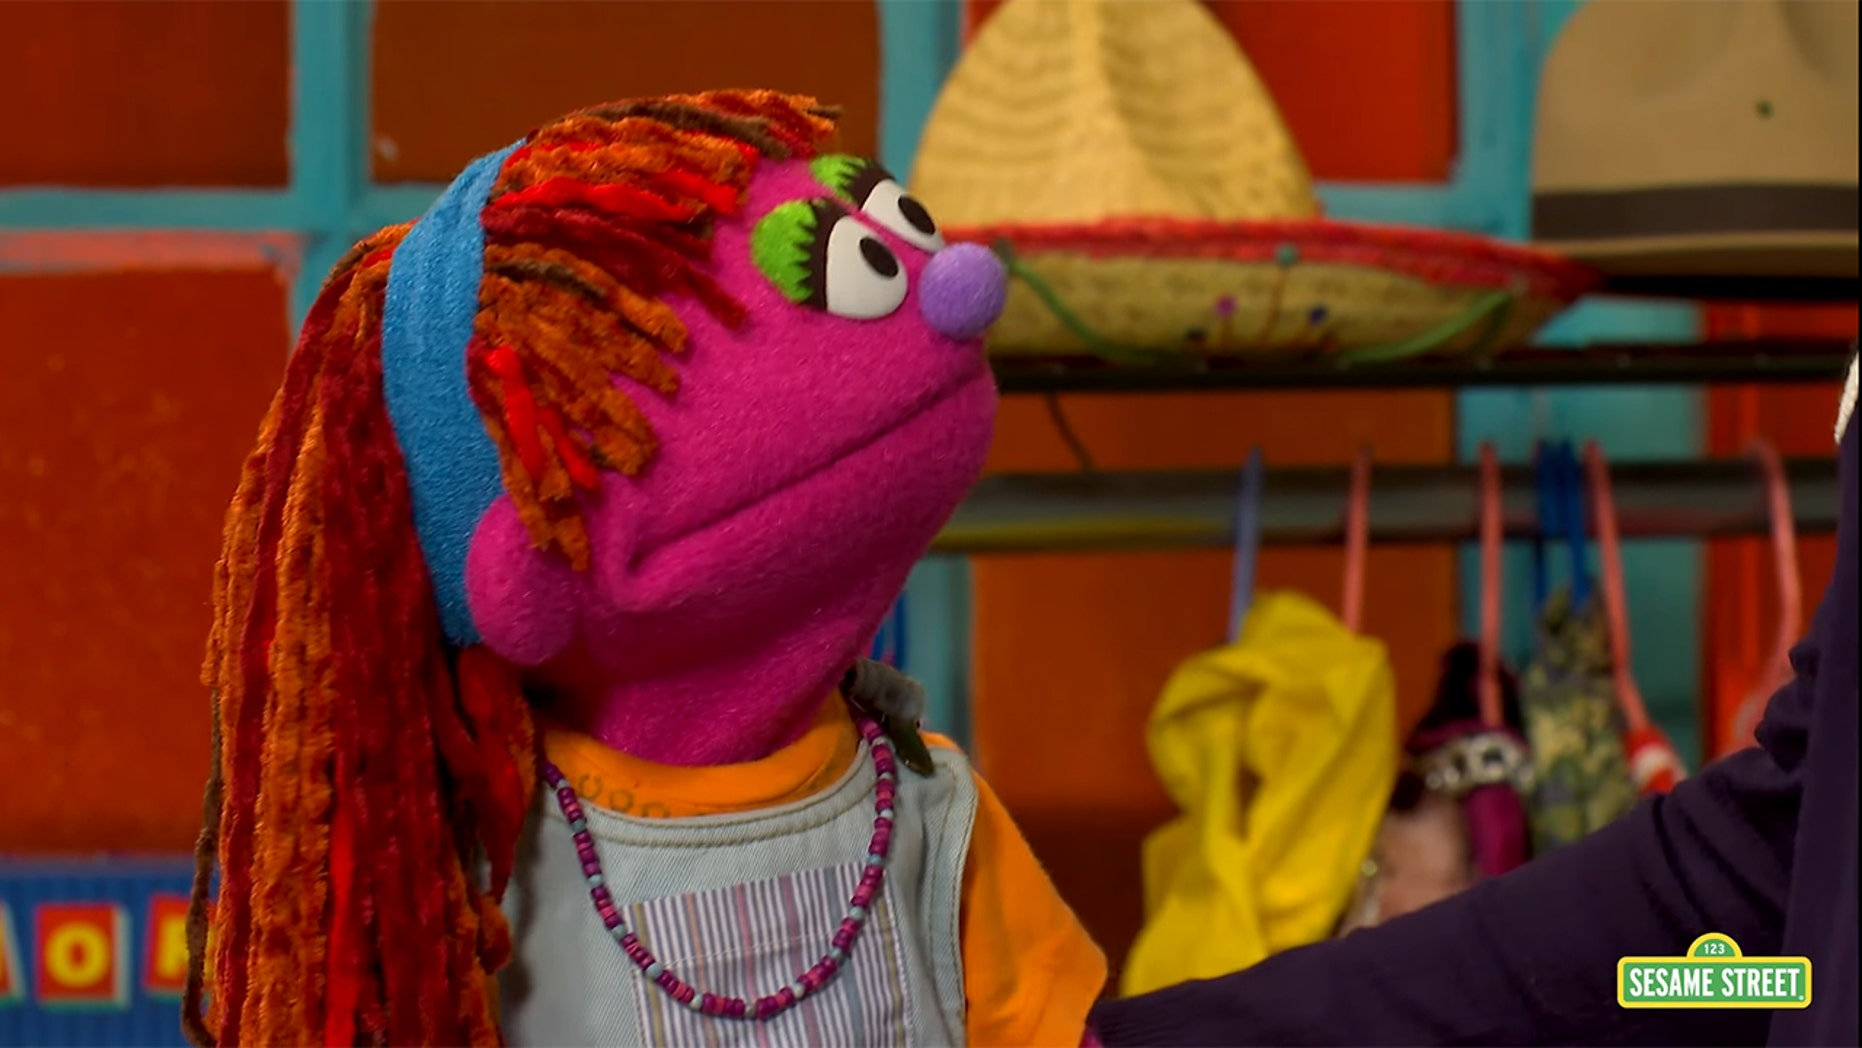 'Sesame Street' to introduce first homeless Muppet